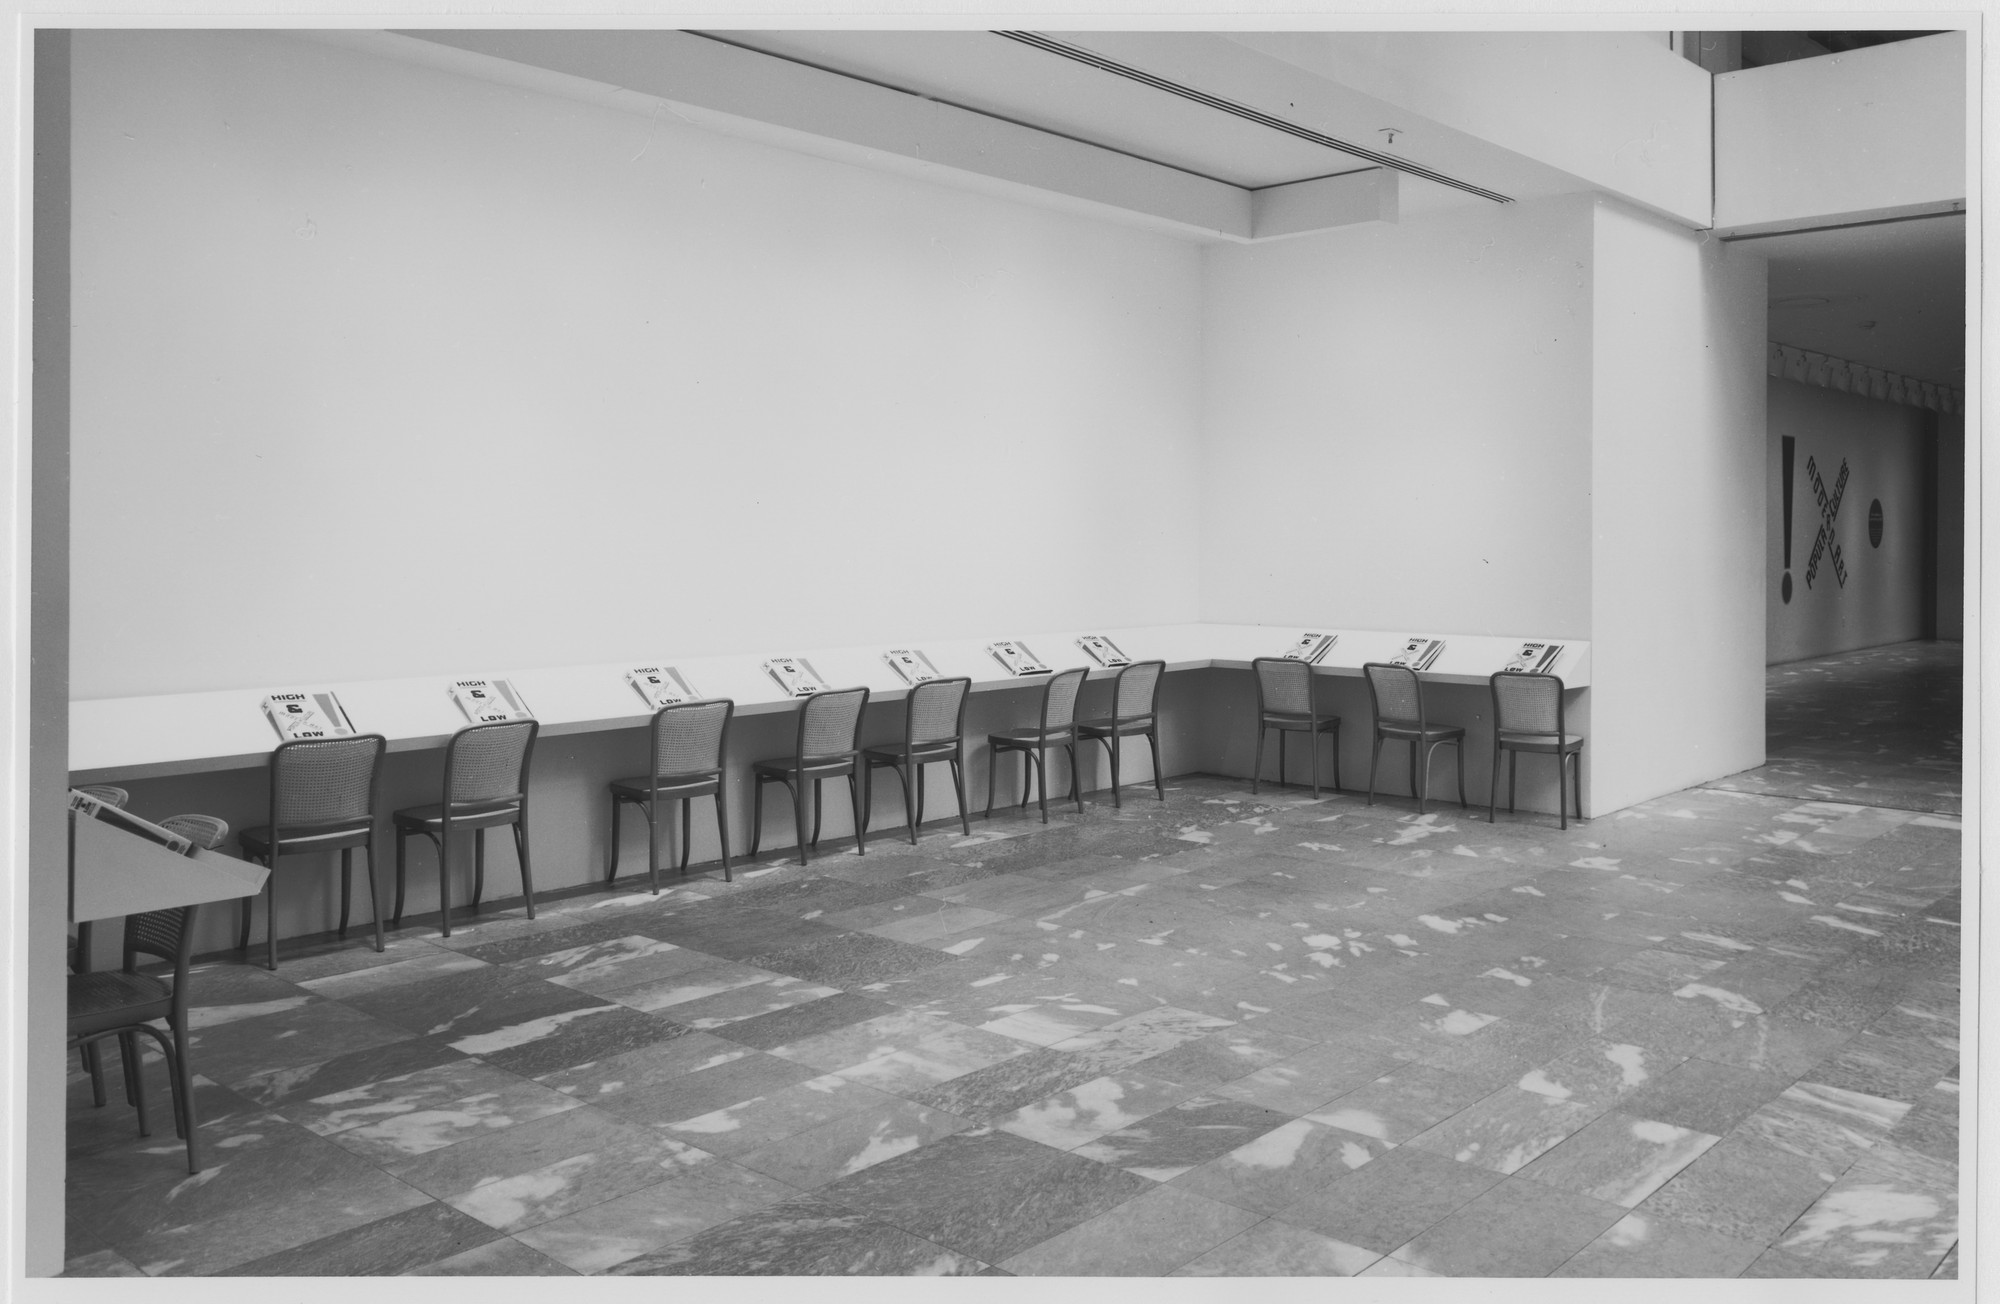 "Installation view of the exhibition, ""High and Low: Modern Art and Popular Culture"" October 7, 1990–January 15, 1991. Photographic Archive. The Museum of Modern Art Archives, New York. IN1559.1. Photograph by Mali Olatunji."